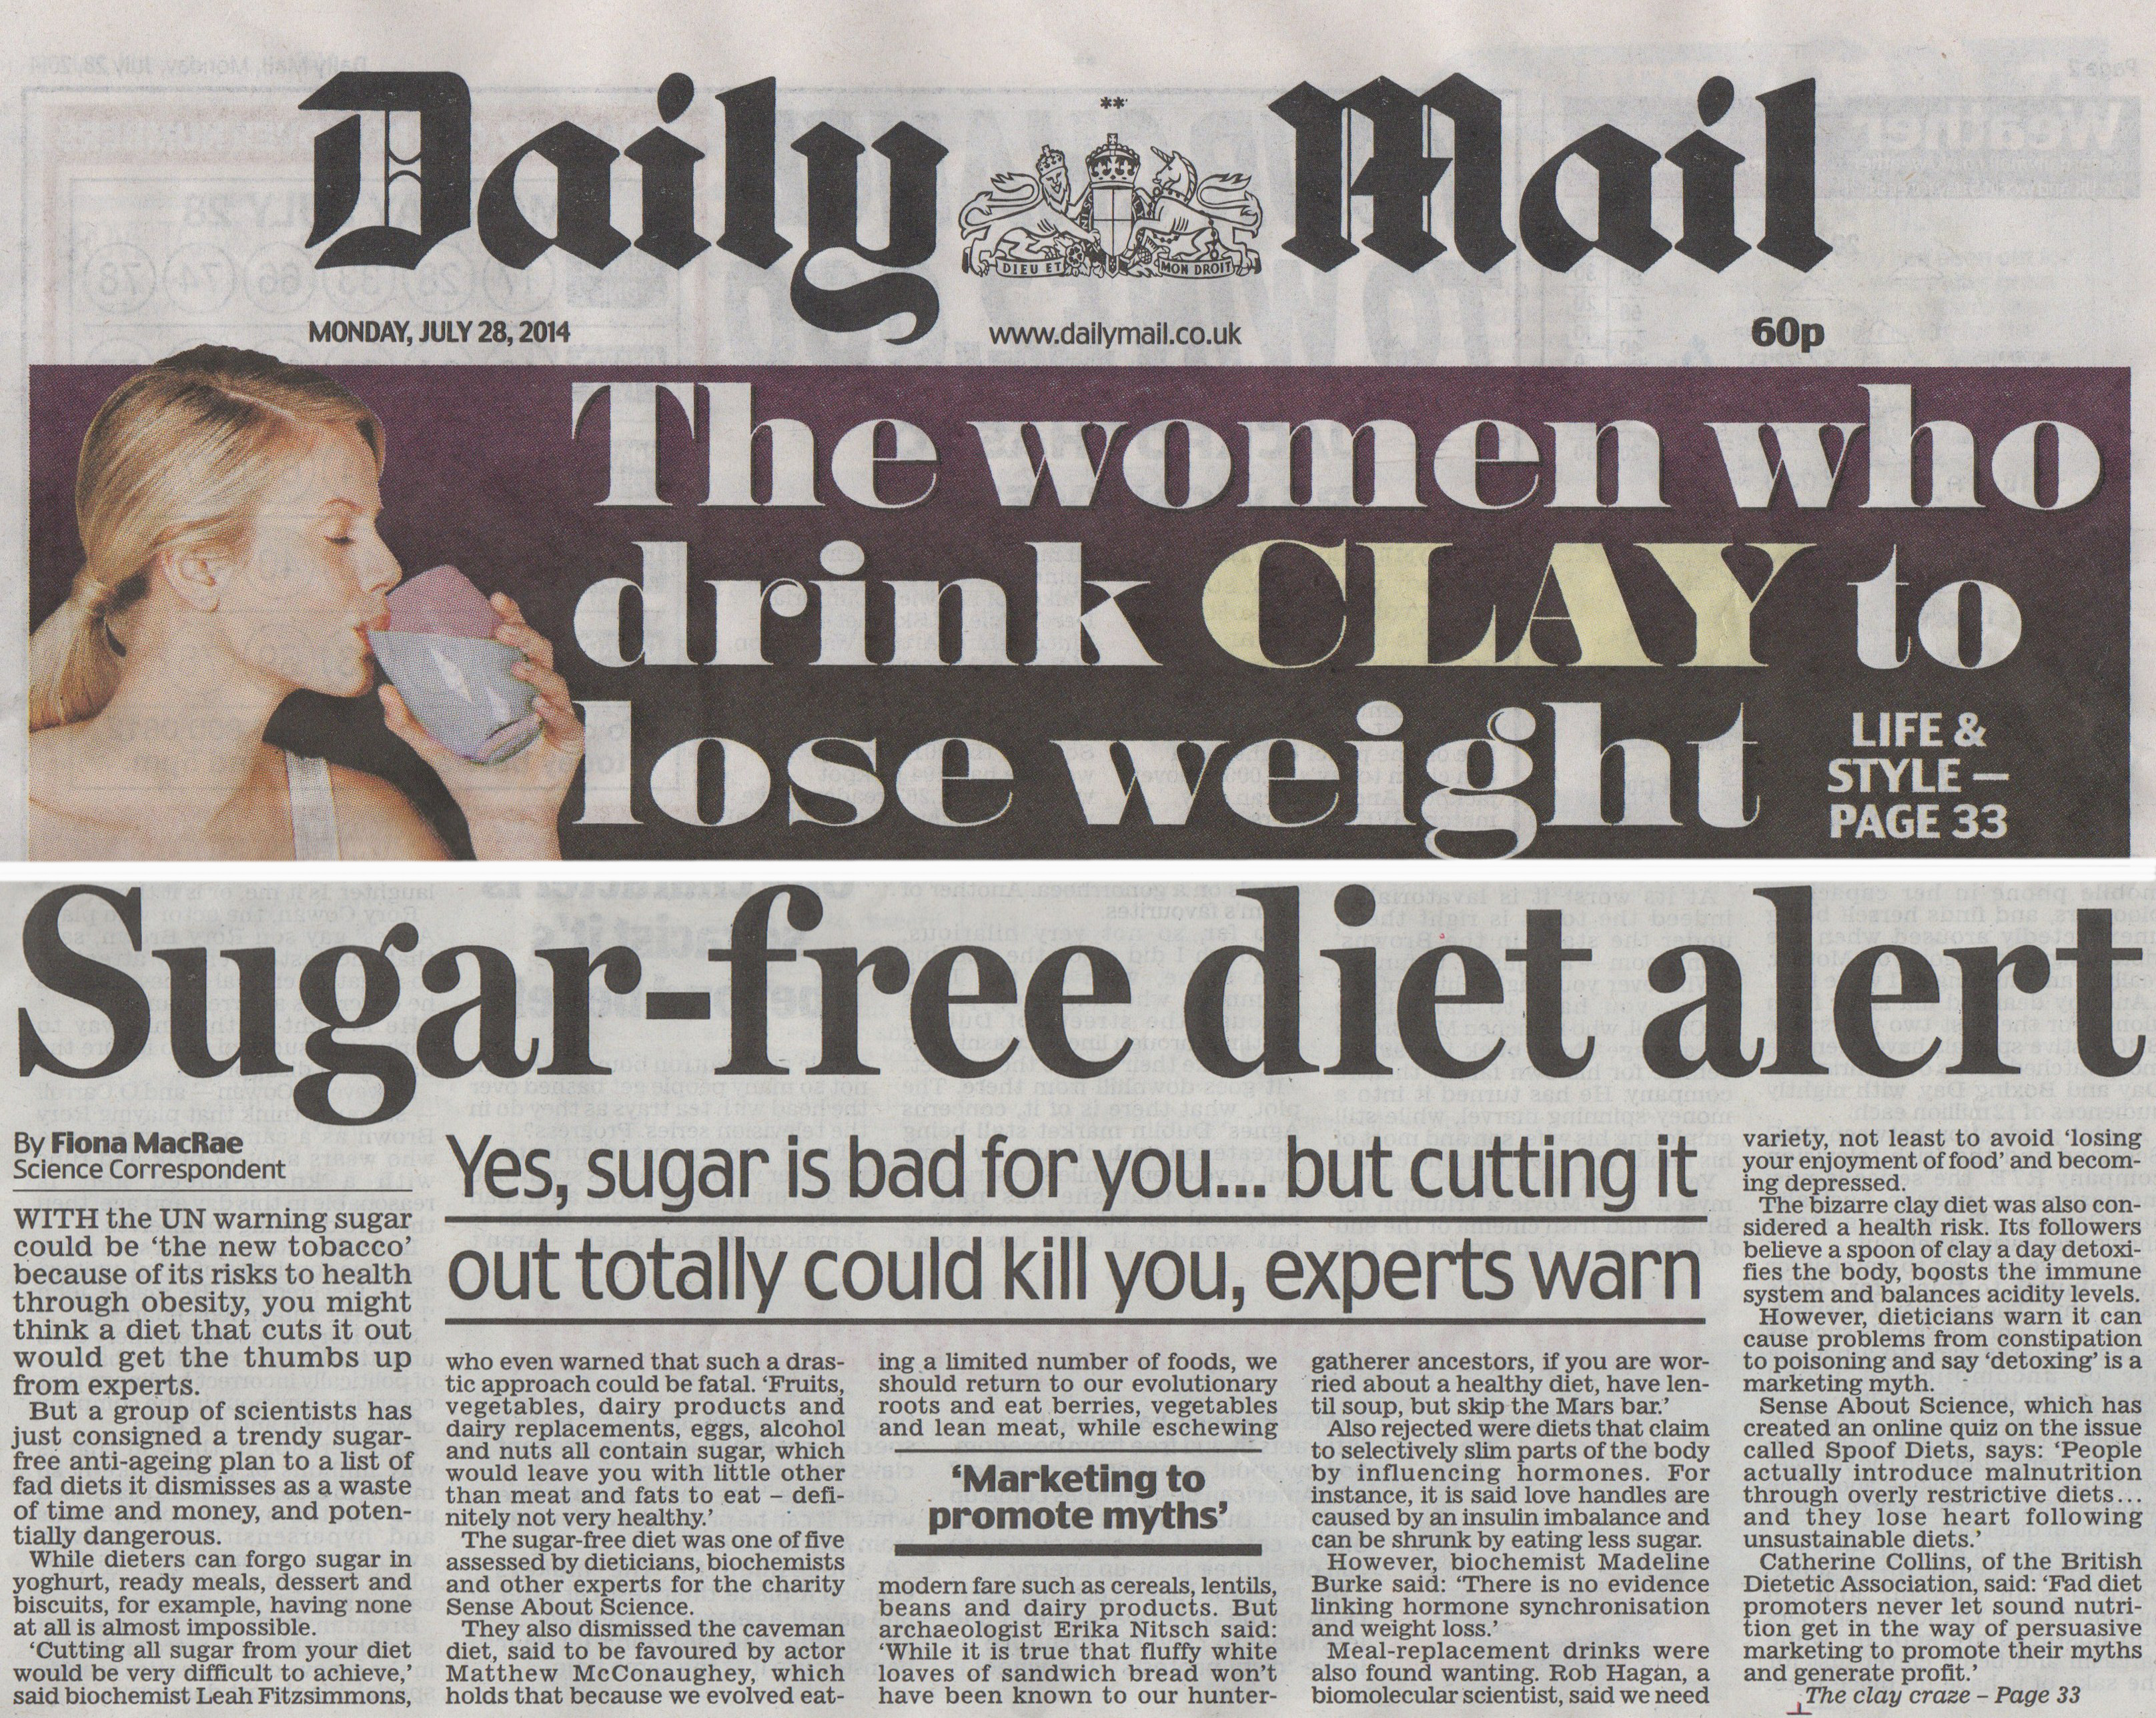 Spoof Diets Daily Mail coverage